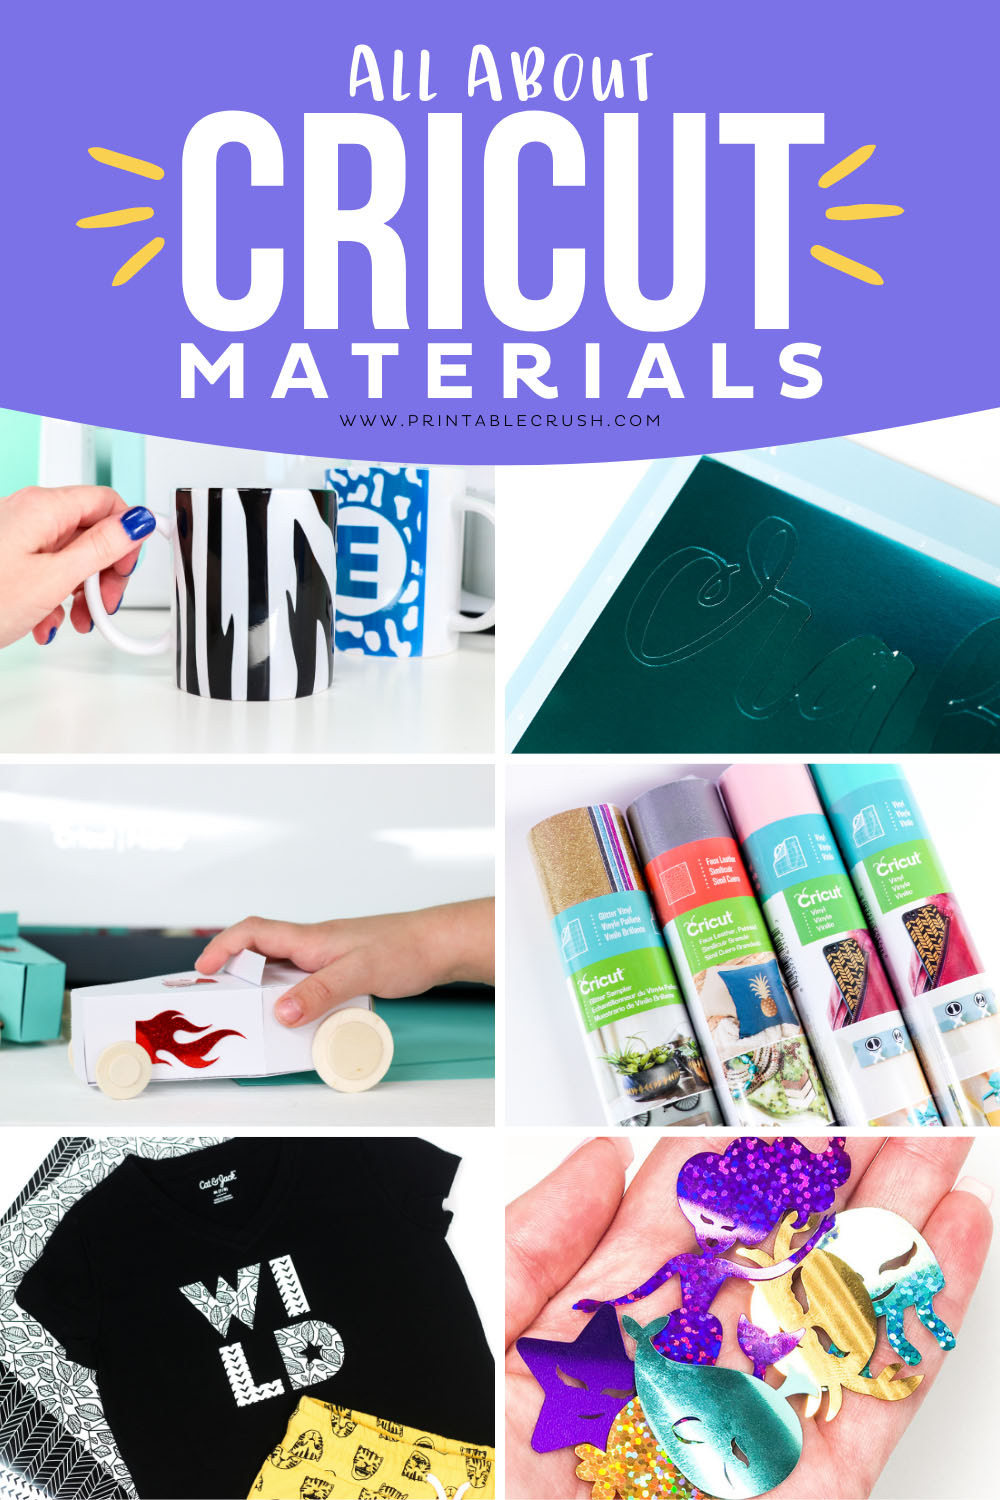 Cricut Materials FAQ - Learn everything you need to know about Cricut Materials - Printable Crush